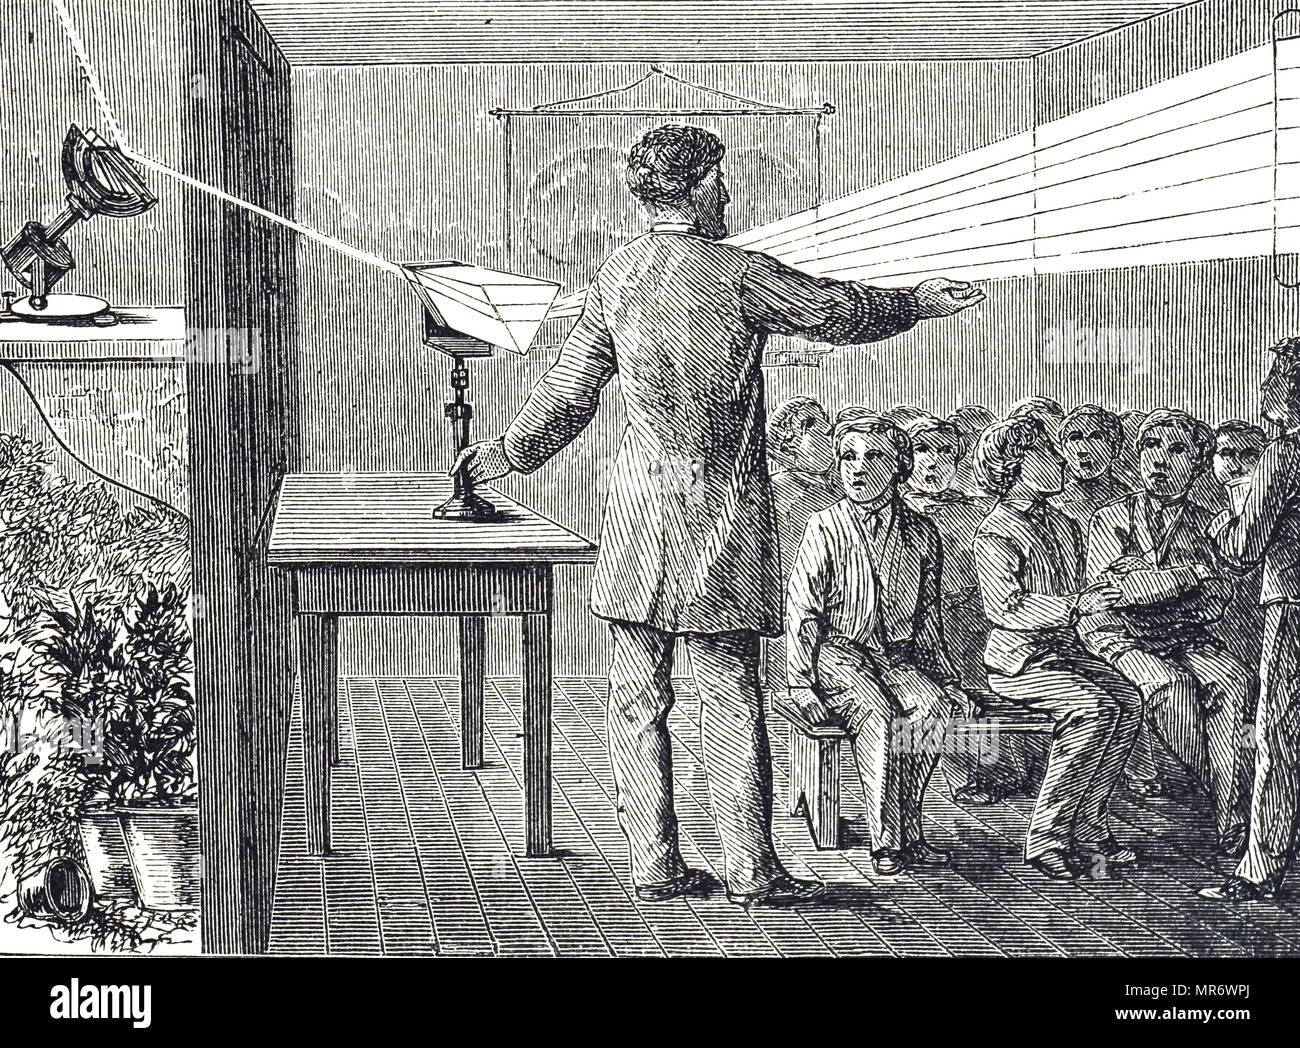 Engraving depicting the solar spectrum being demonstrated to young boys in a darkened room by means of a heliostat and a prism. Dated 19th century - Stock Image